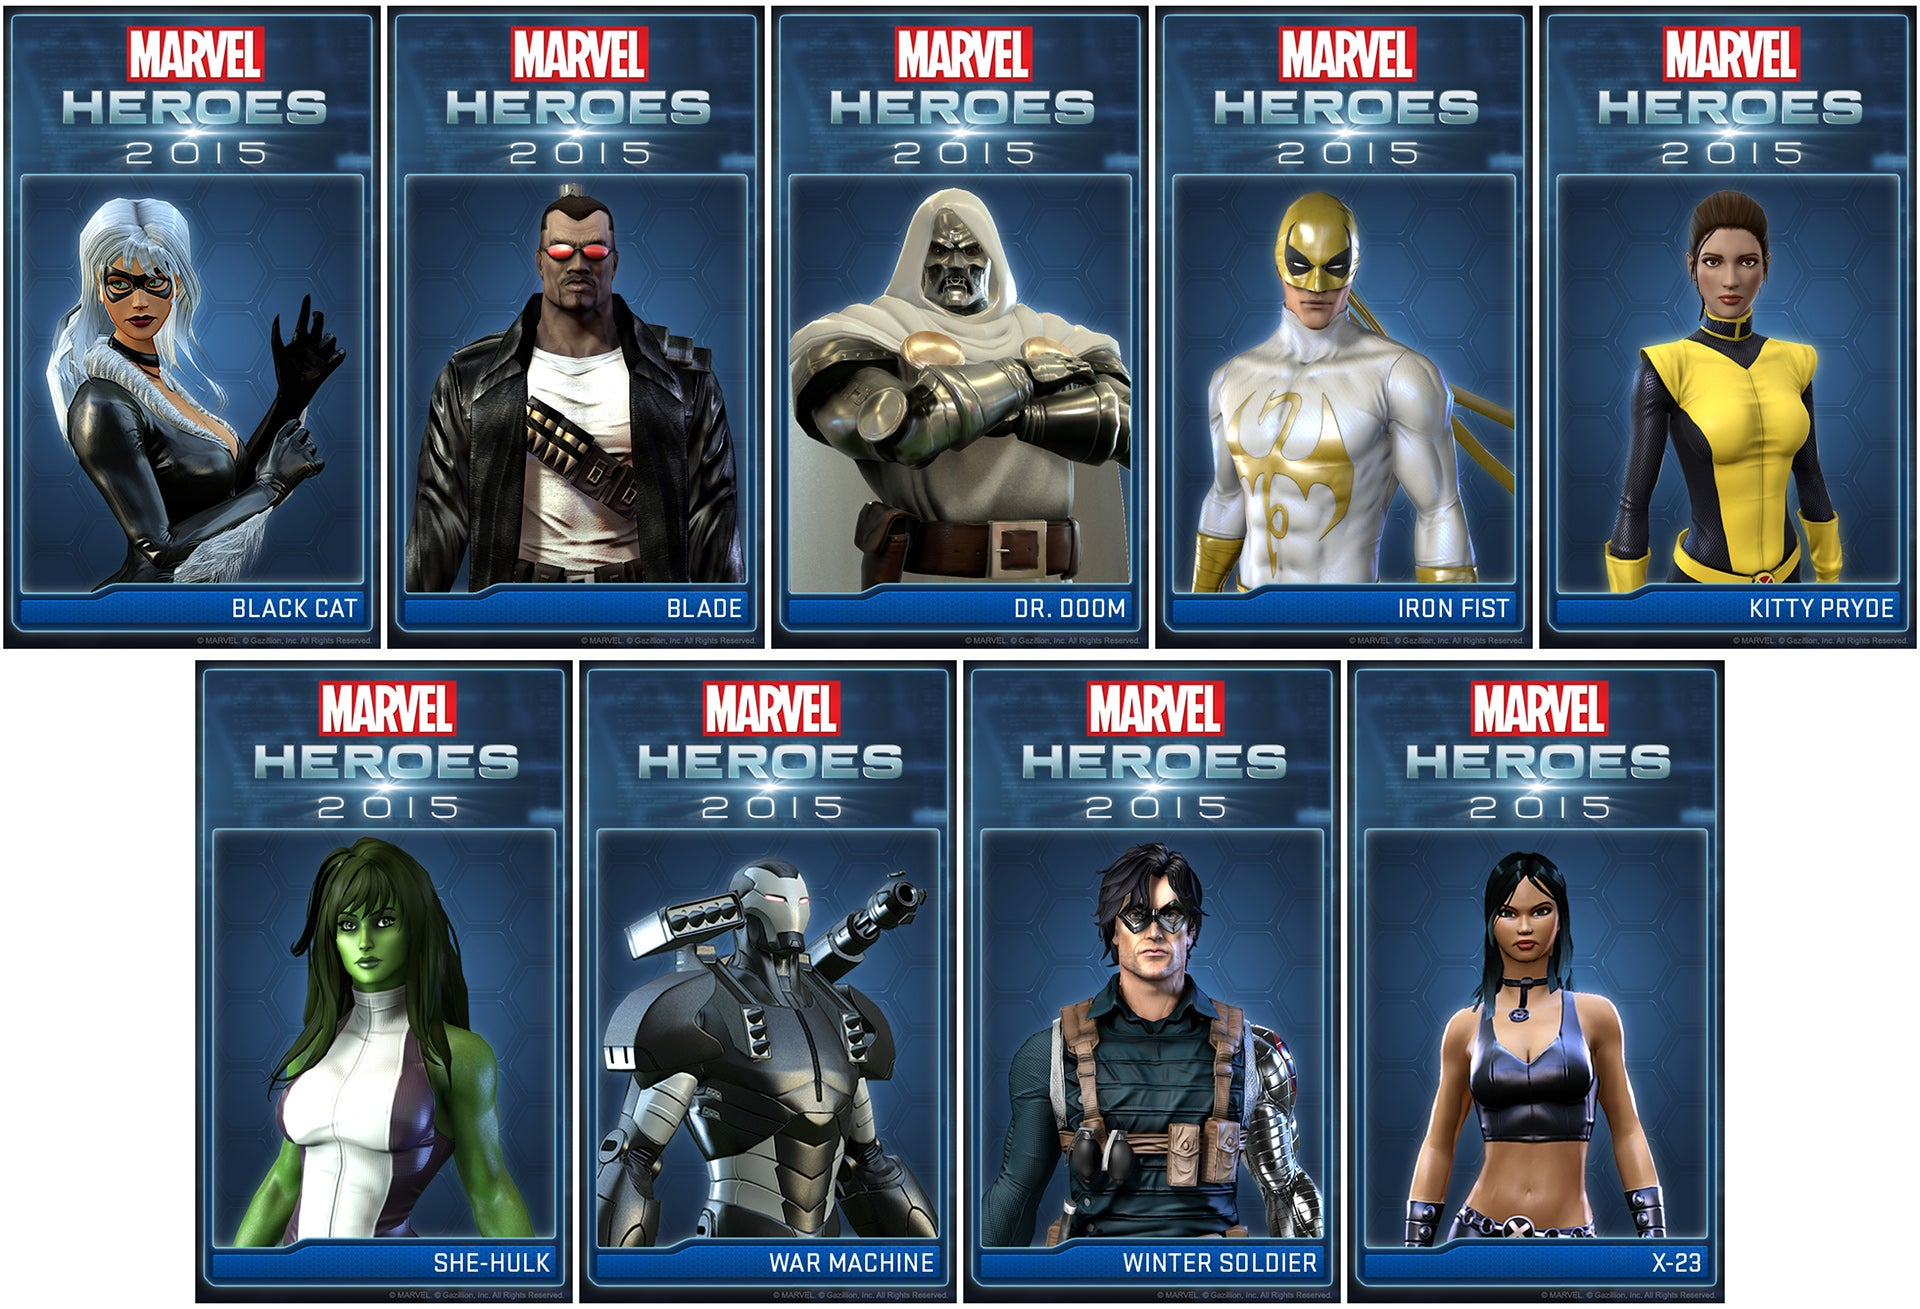 Doctor Doom Invades The Upcoming Marvel Heroes' Roster